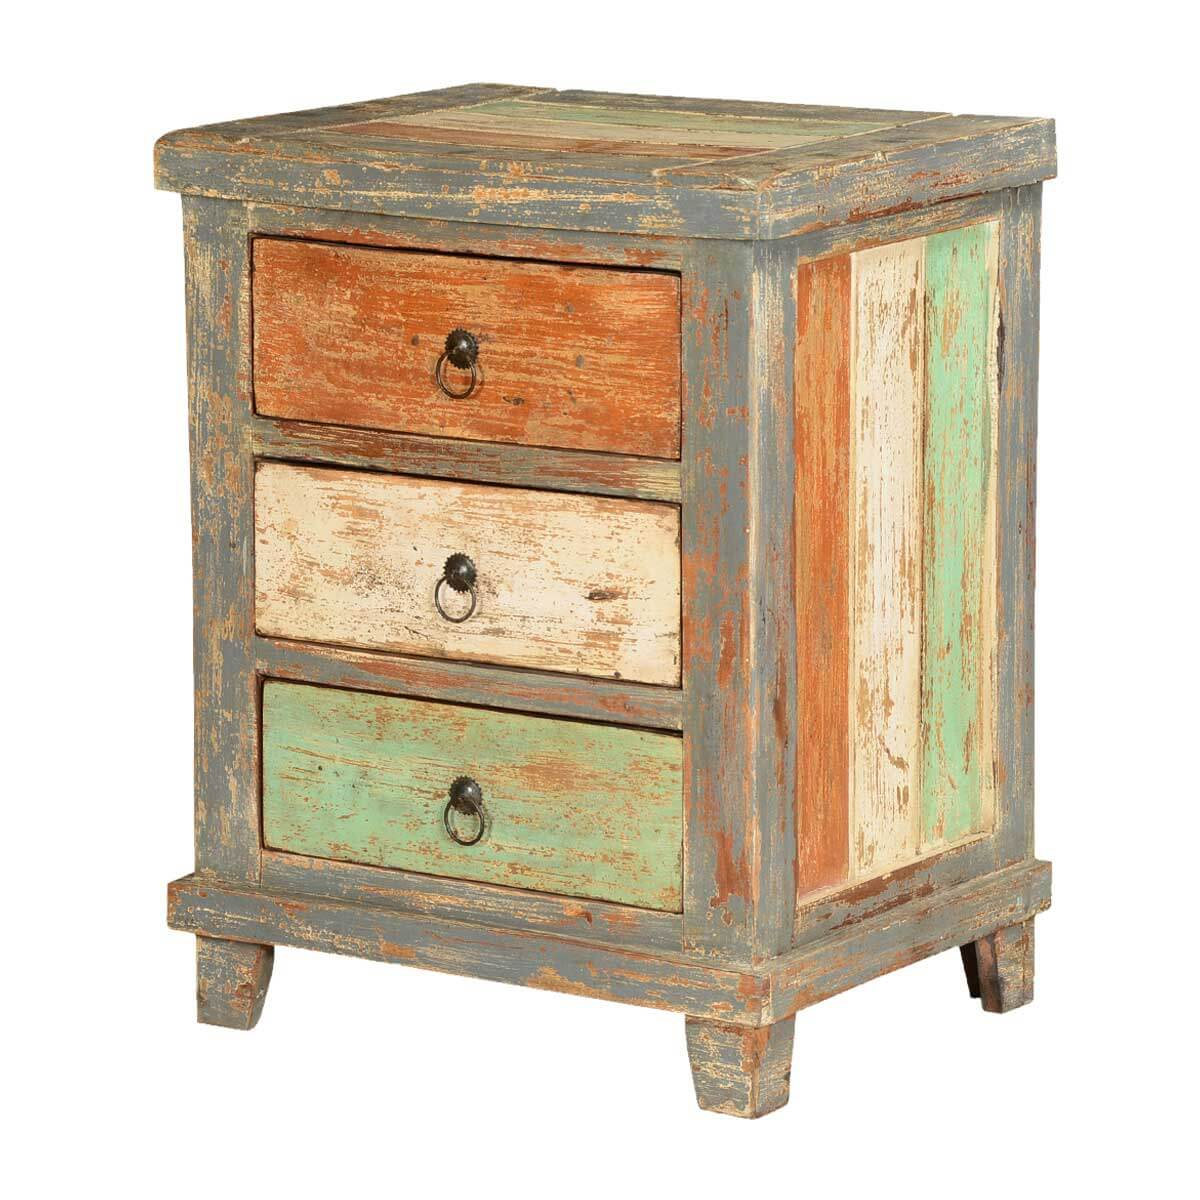 Orange White Green Stripes Mango Wood Rustic Nightstand. Small Round Desk. Desk Organizer With Drawer. Aqua Table. Bush Bennington Managers Desk. Jonathan Adler Desk. Outdoor Table With Cooler. Nursery Drawer Organizers. Tv Stand With Drawers And Shelves